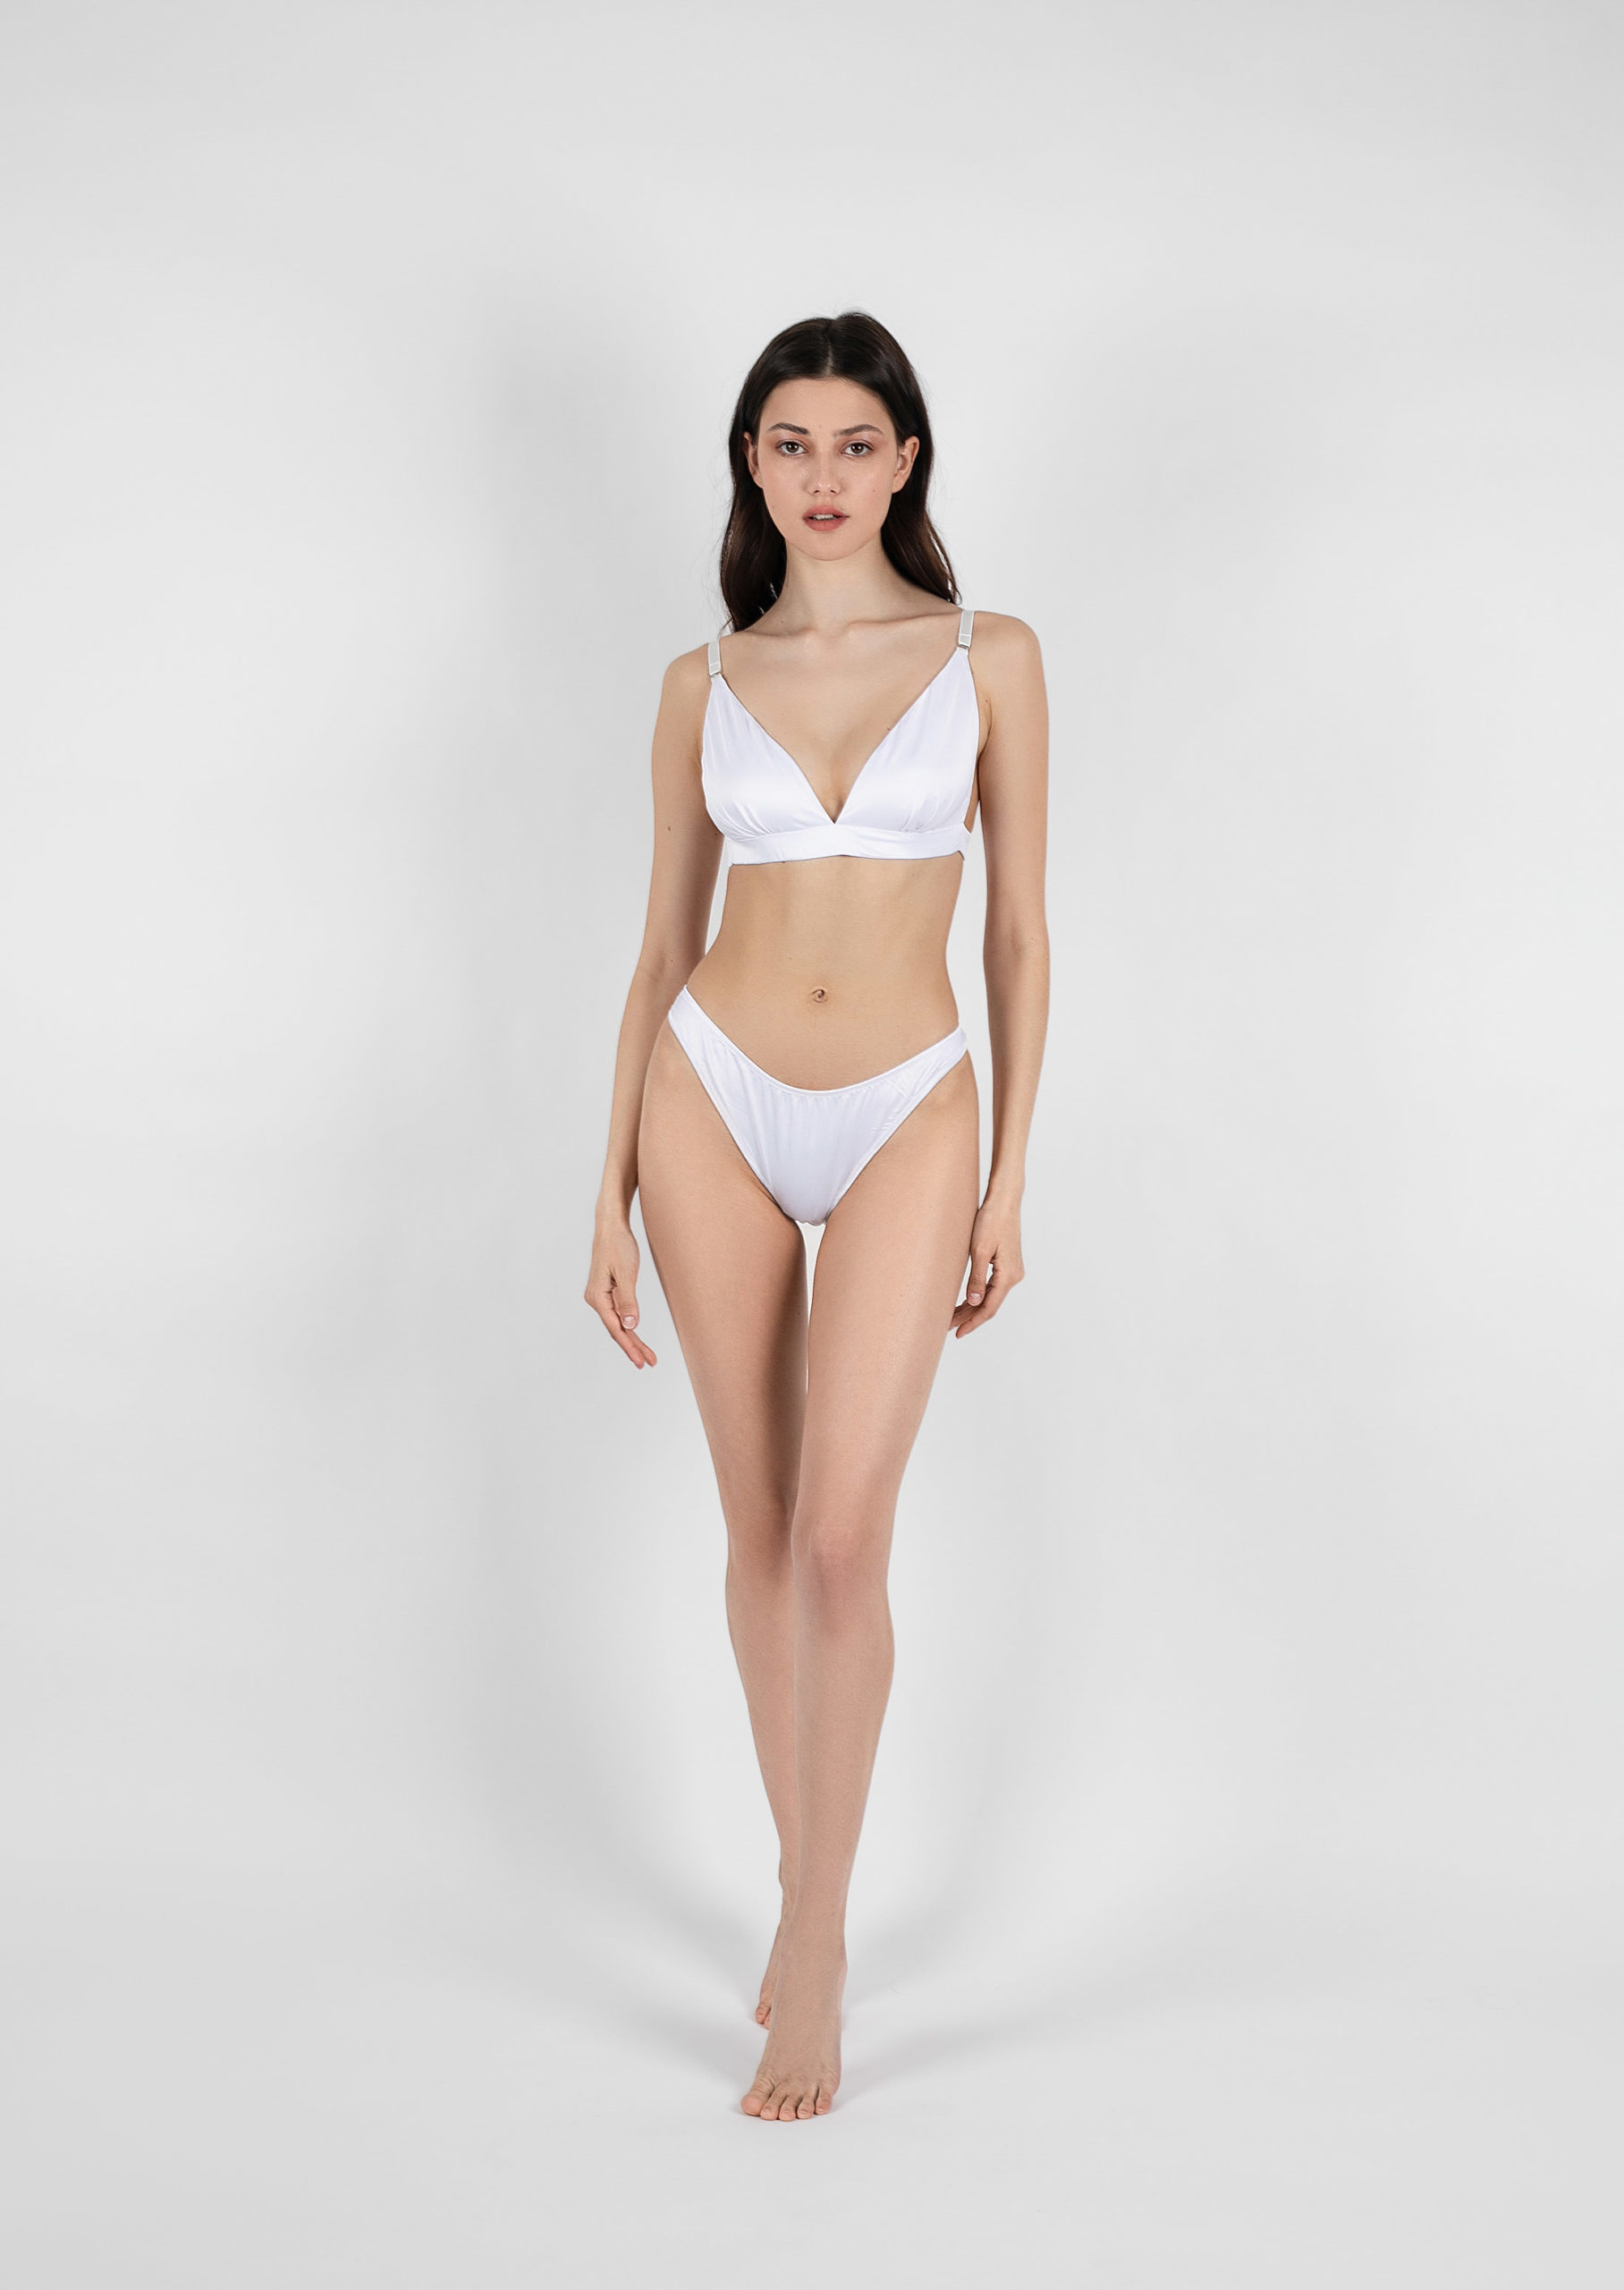 Coconut milk lingerie set / white satin non wired triangle bra with straps and thong / silk cupless bra with removable feathers and panties